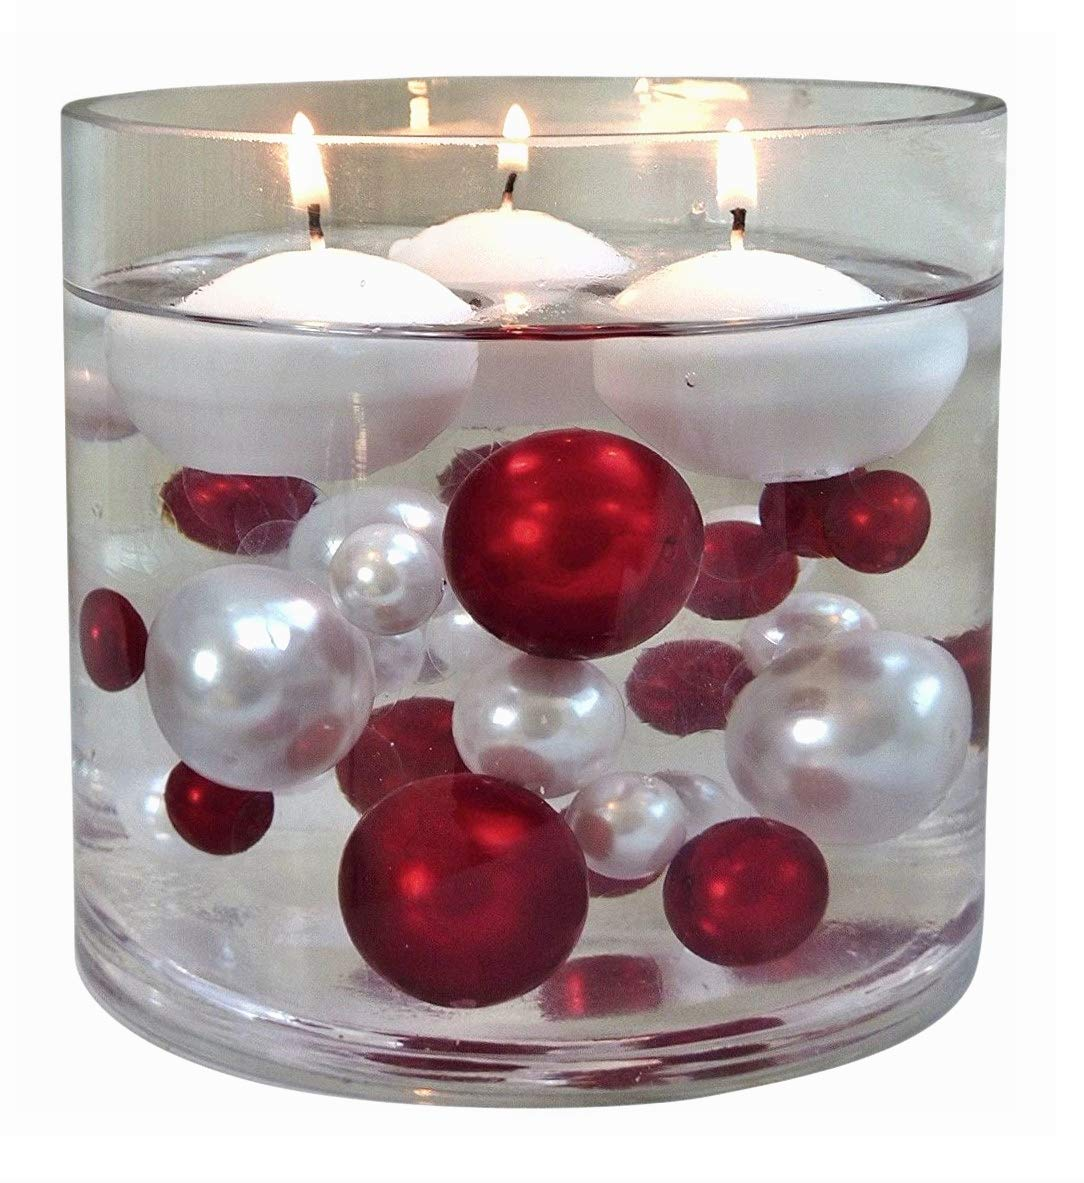 120 Floating NO Hole Red & White Pearls with Matching Gems - Jumbo/Assorted Sizes Vase Decorations & Table Scatters + Includes Transparent Water Gels Packets for Floating The Pearls